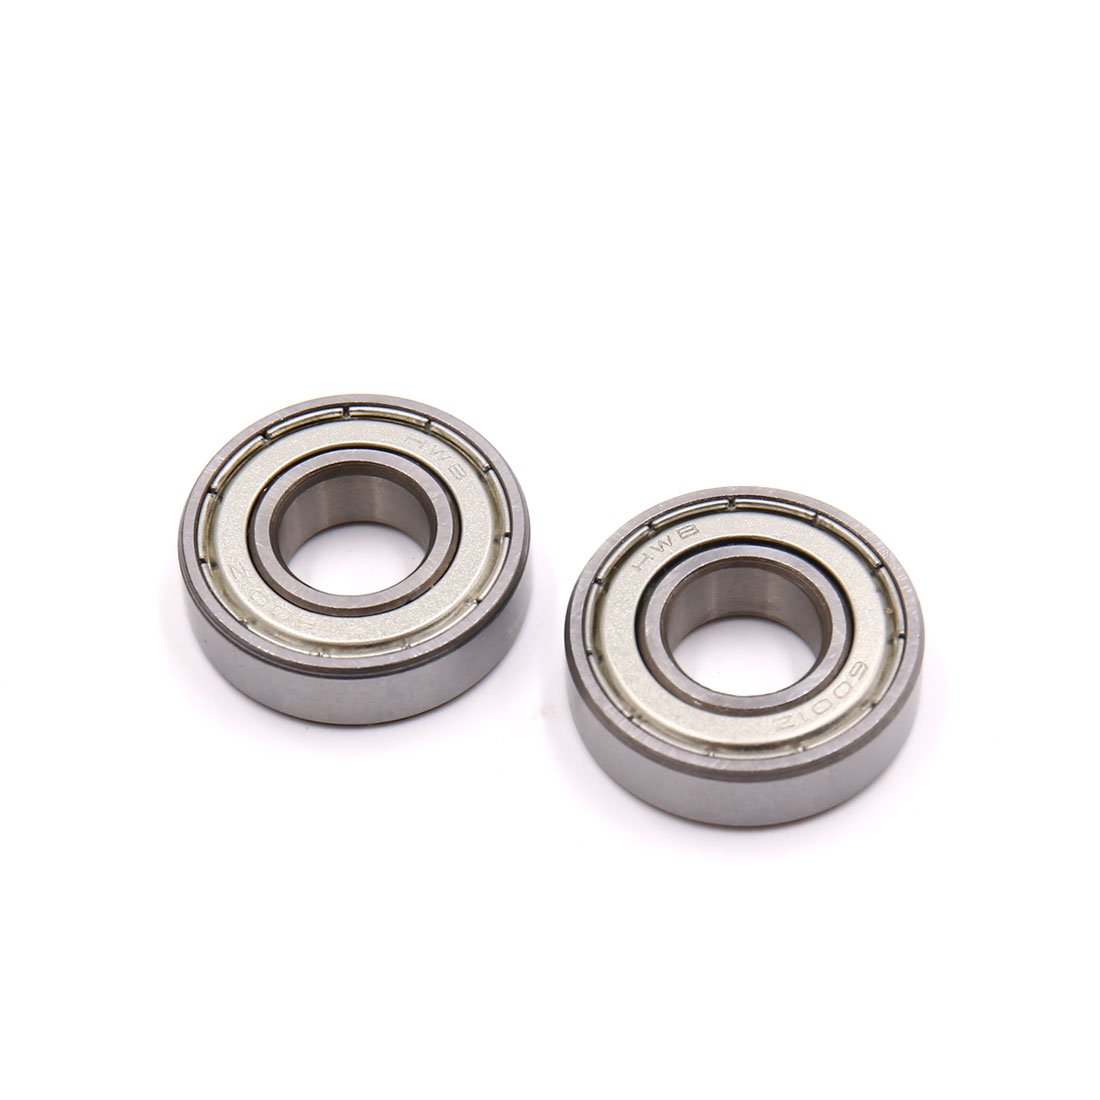 Uxcell 2Pcs 6001Z Stainless Steel Motorcycle Deep Groove Radial Ball Bearing 28 X 12 X 8mm, 2 Pack